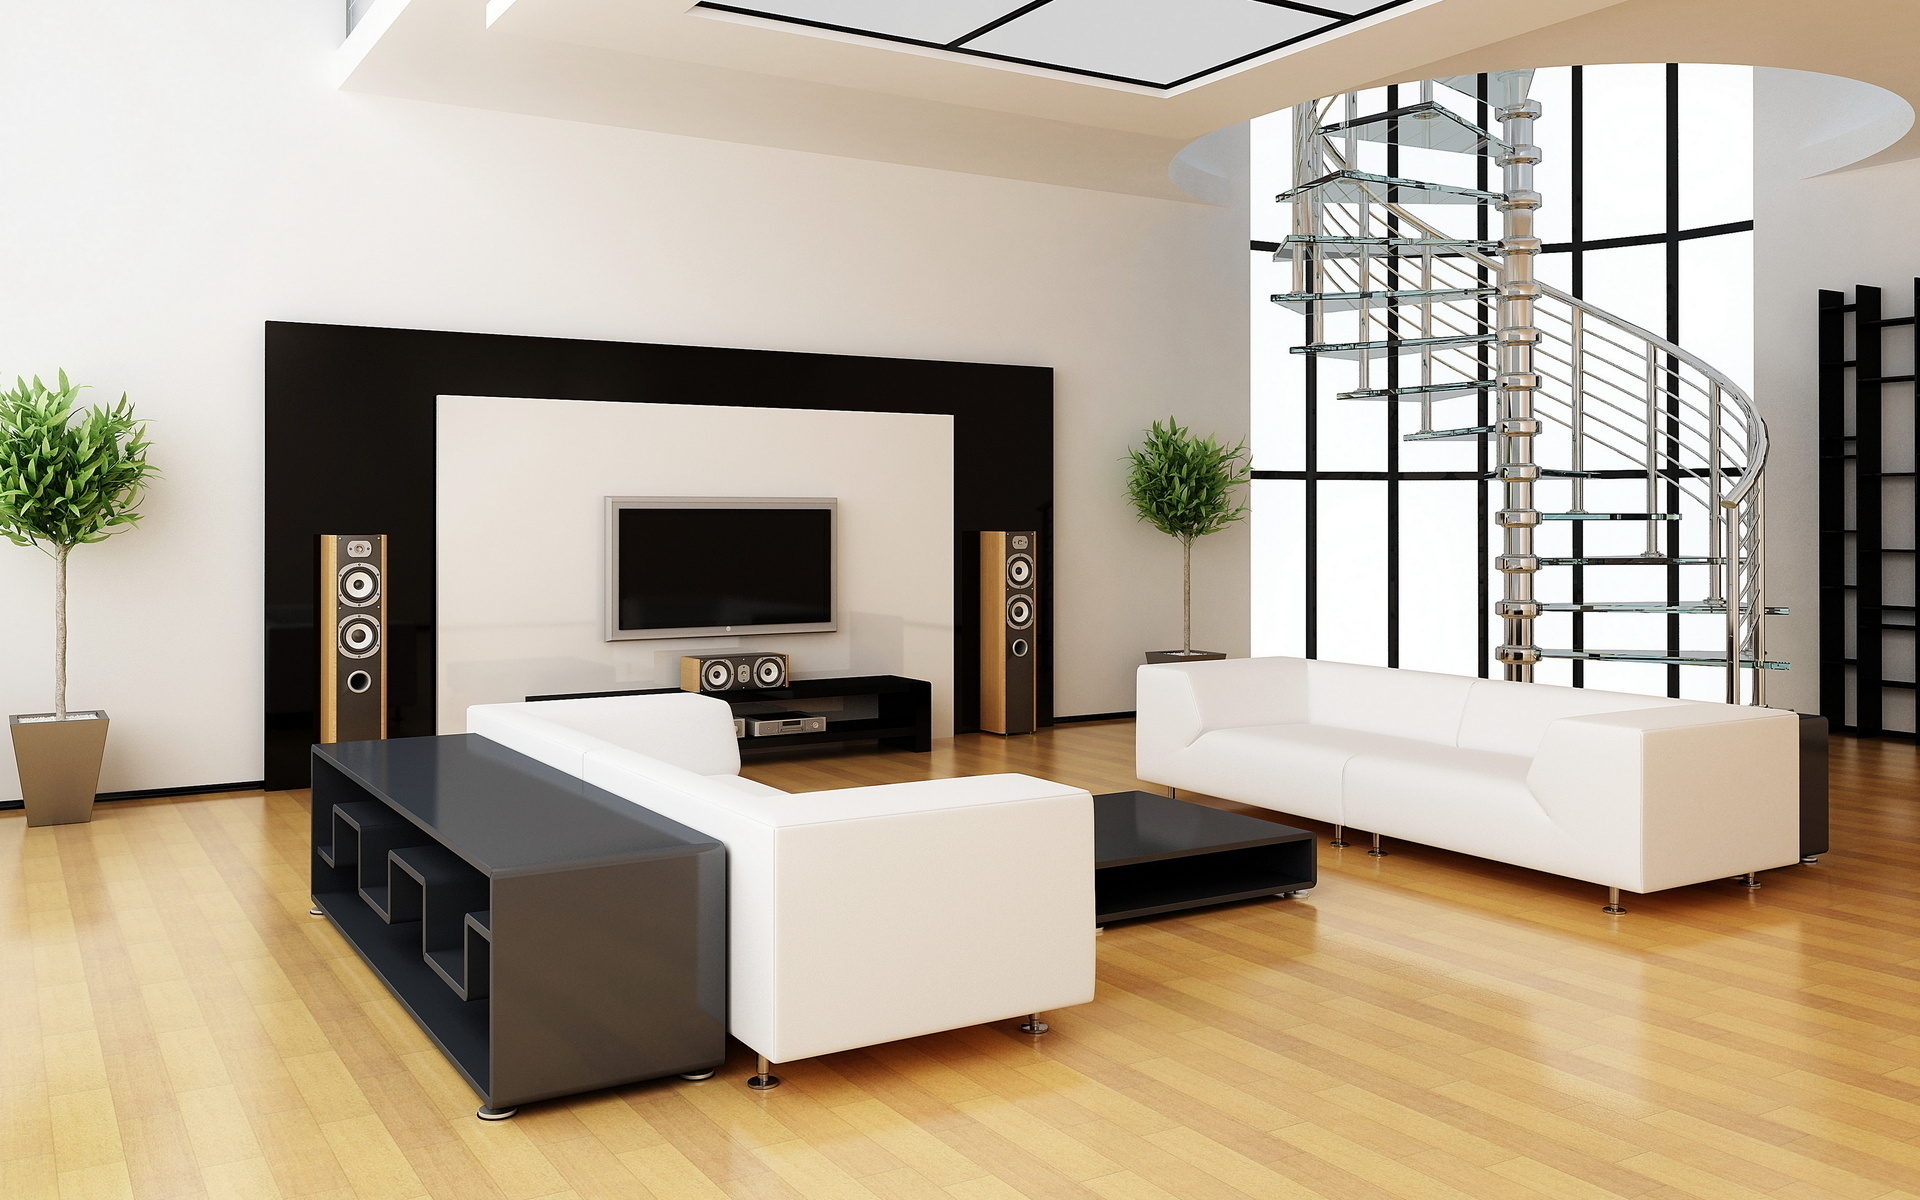 Interior design Interior designer or interior designer - what's the difference?  MULYMRK